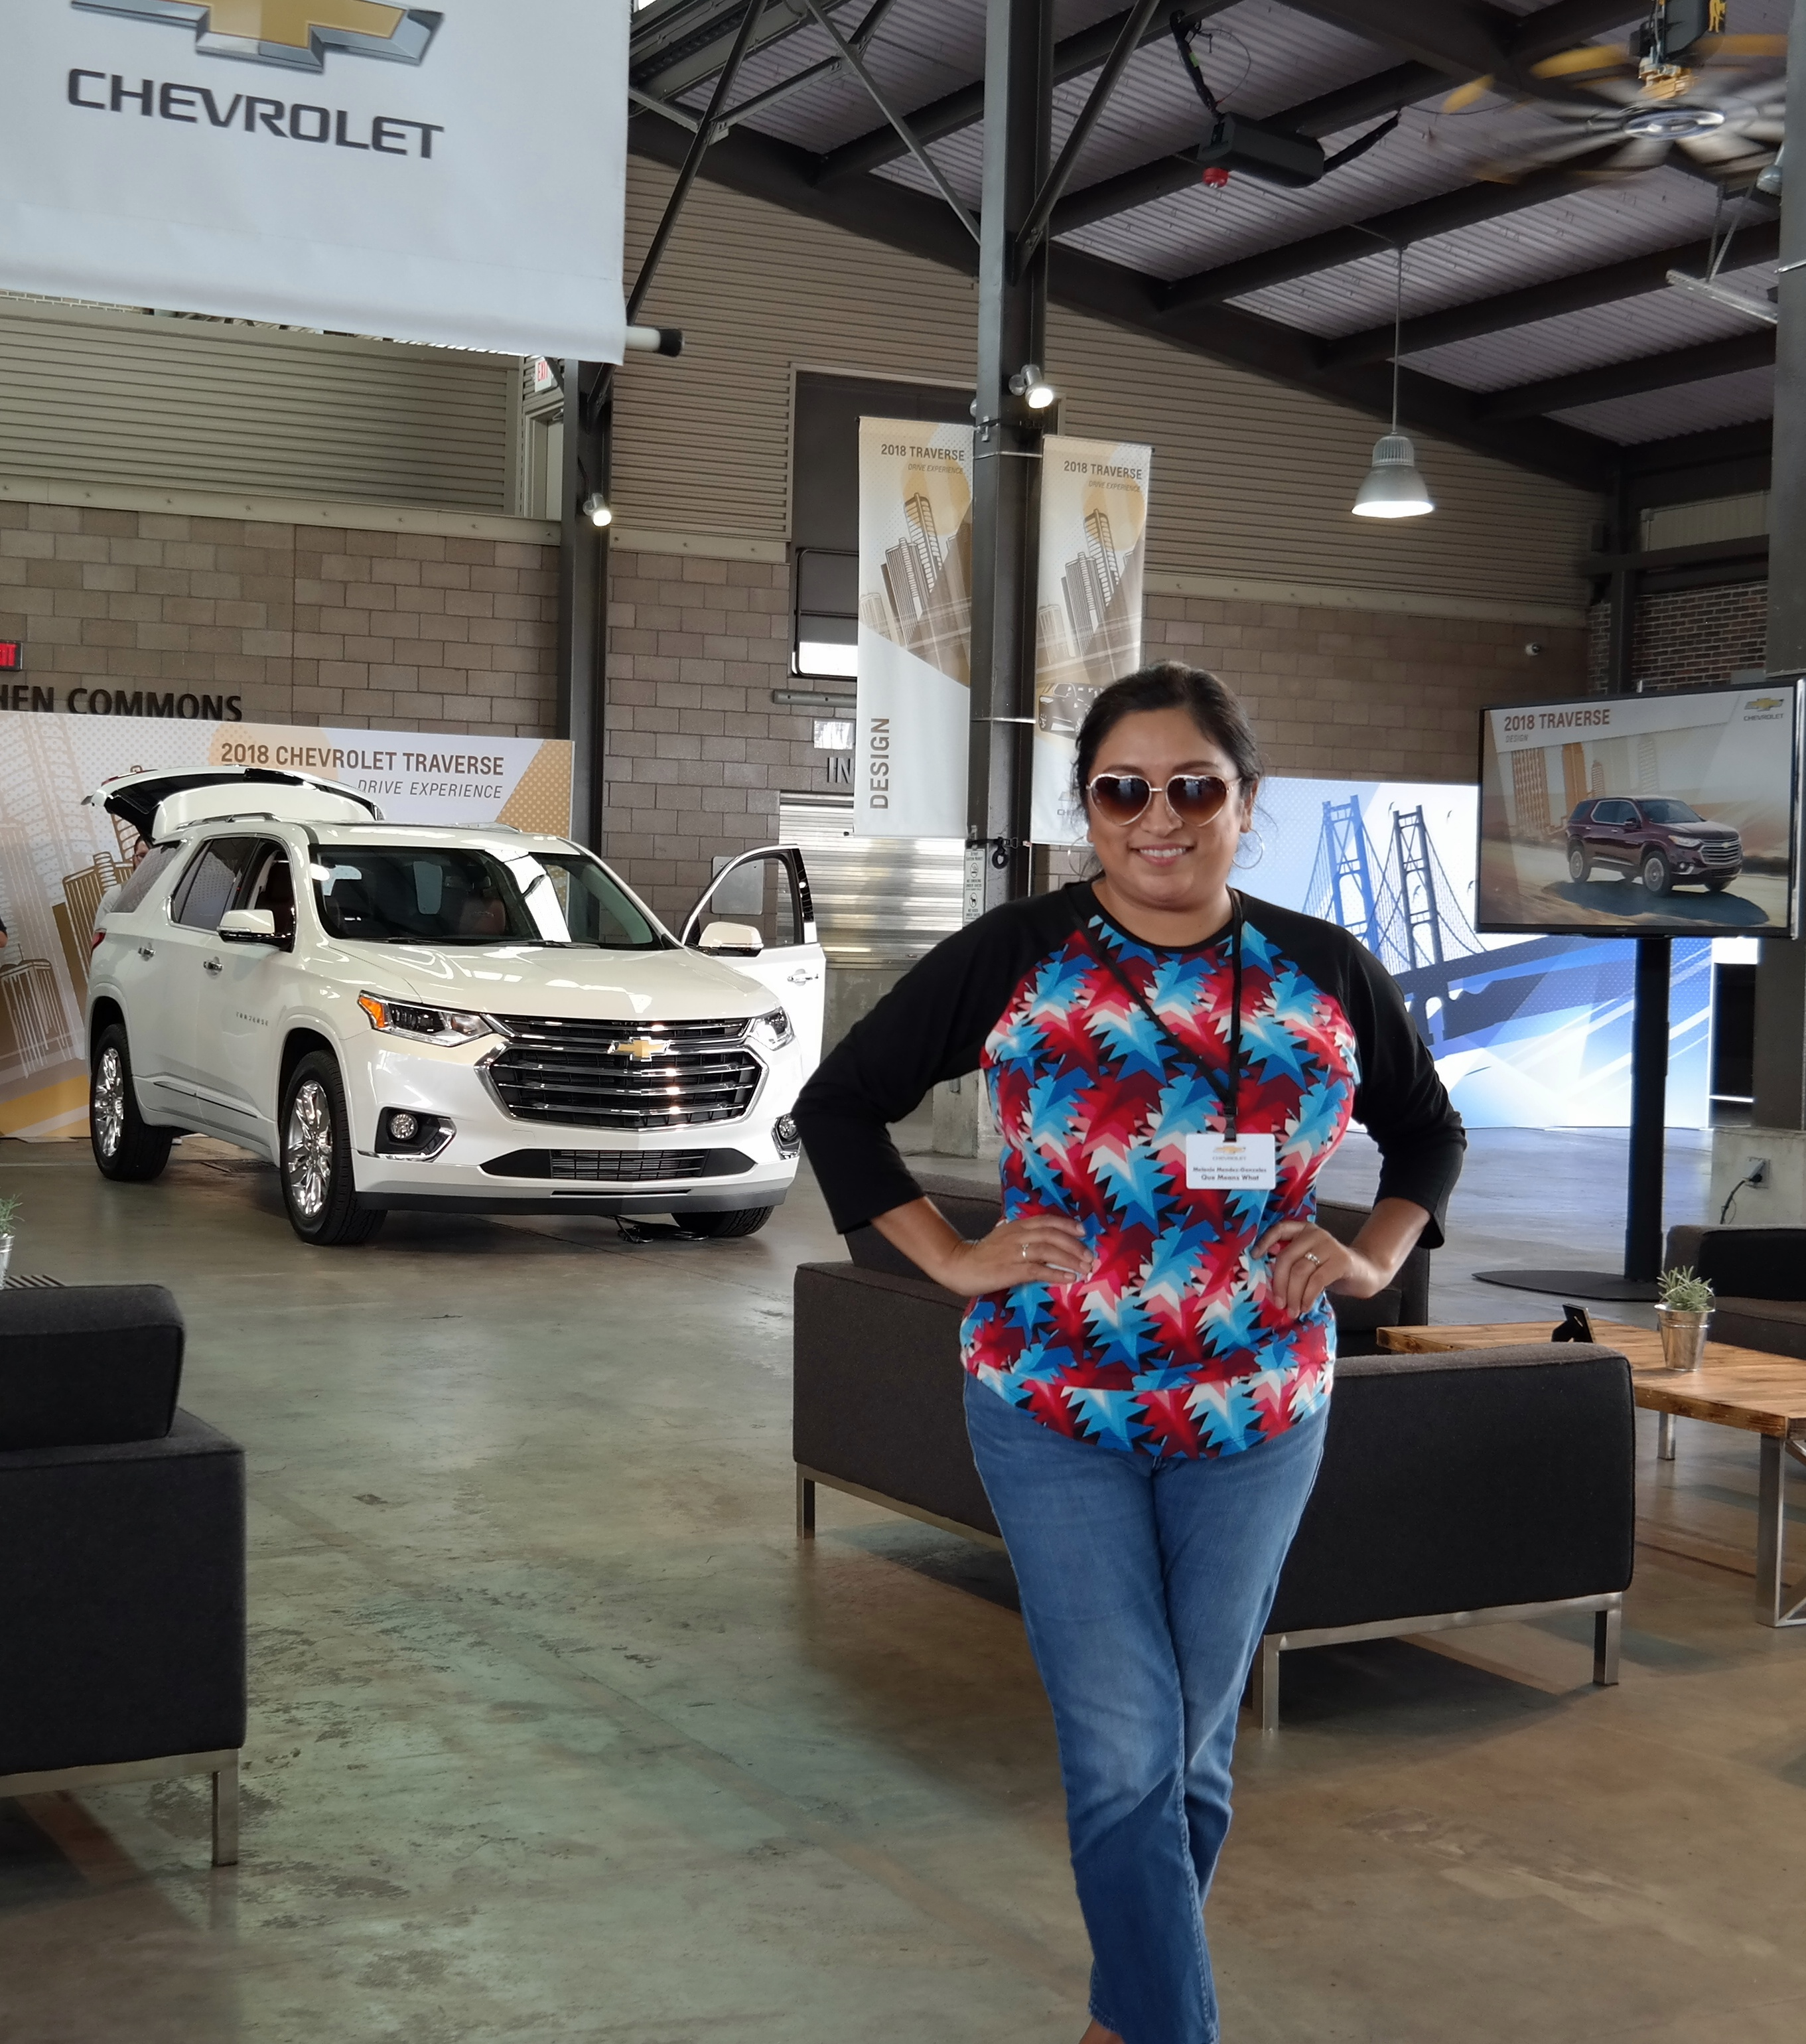 2018 Chevrolet Traverse Drive Experience